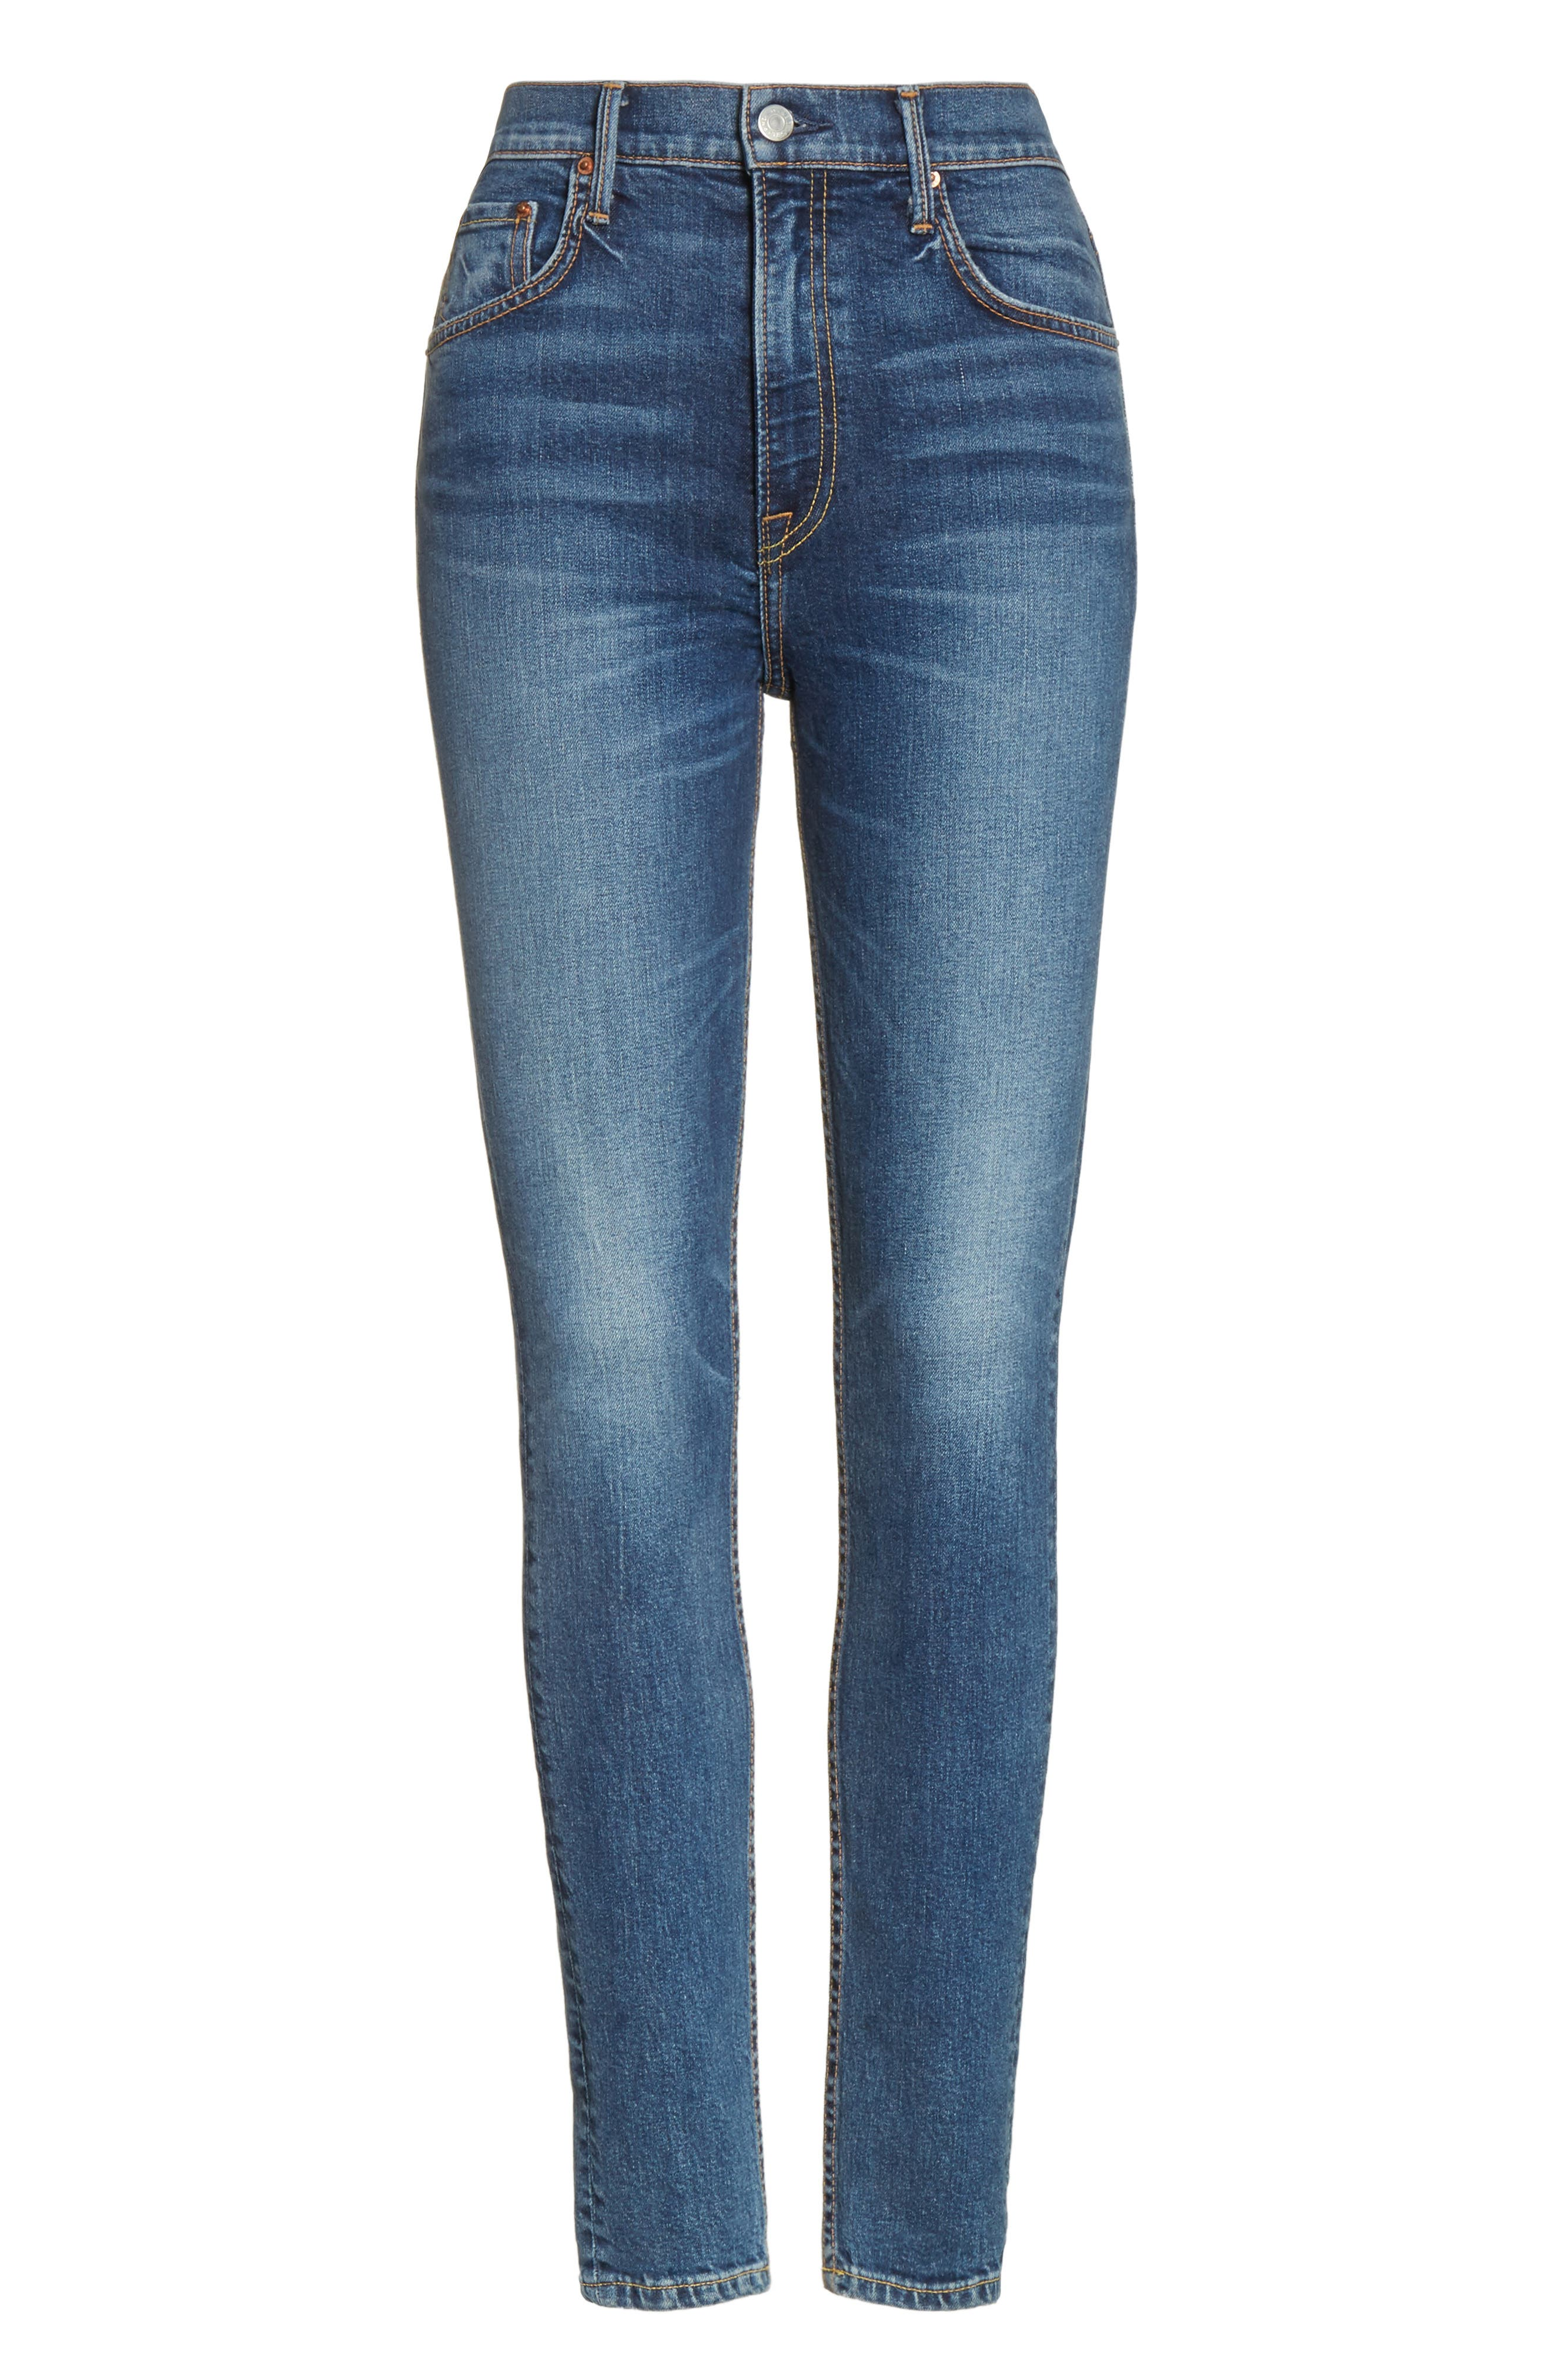 Kendall Super Stretch High Waist Skinny Jeans,                             Alternate thumbnail 6, color,                             NO MORE TEARS